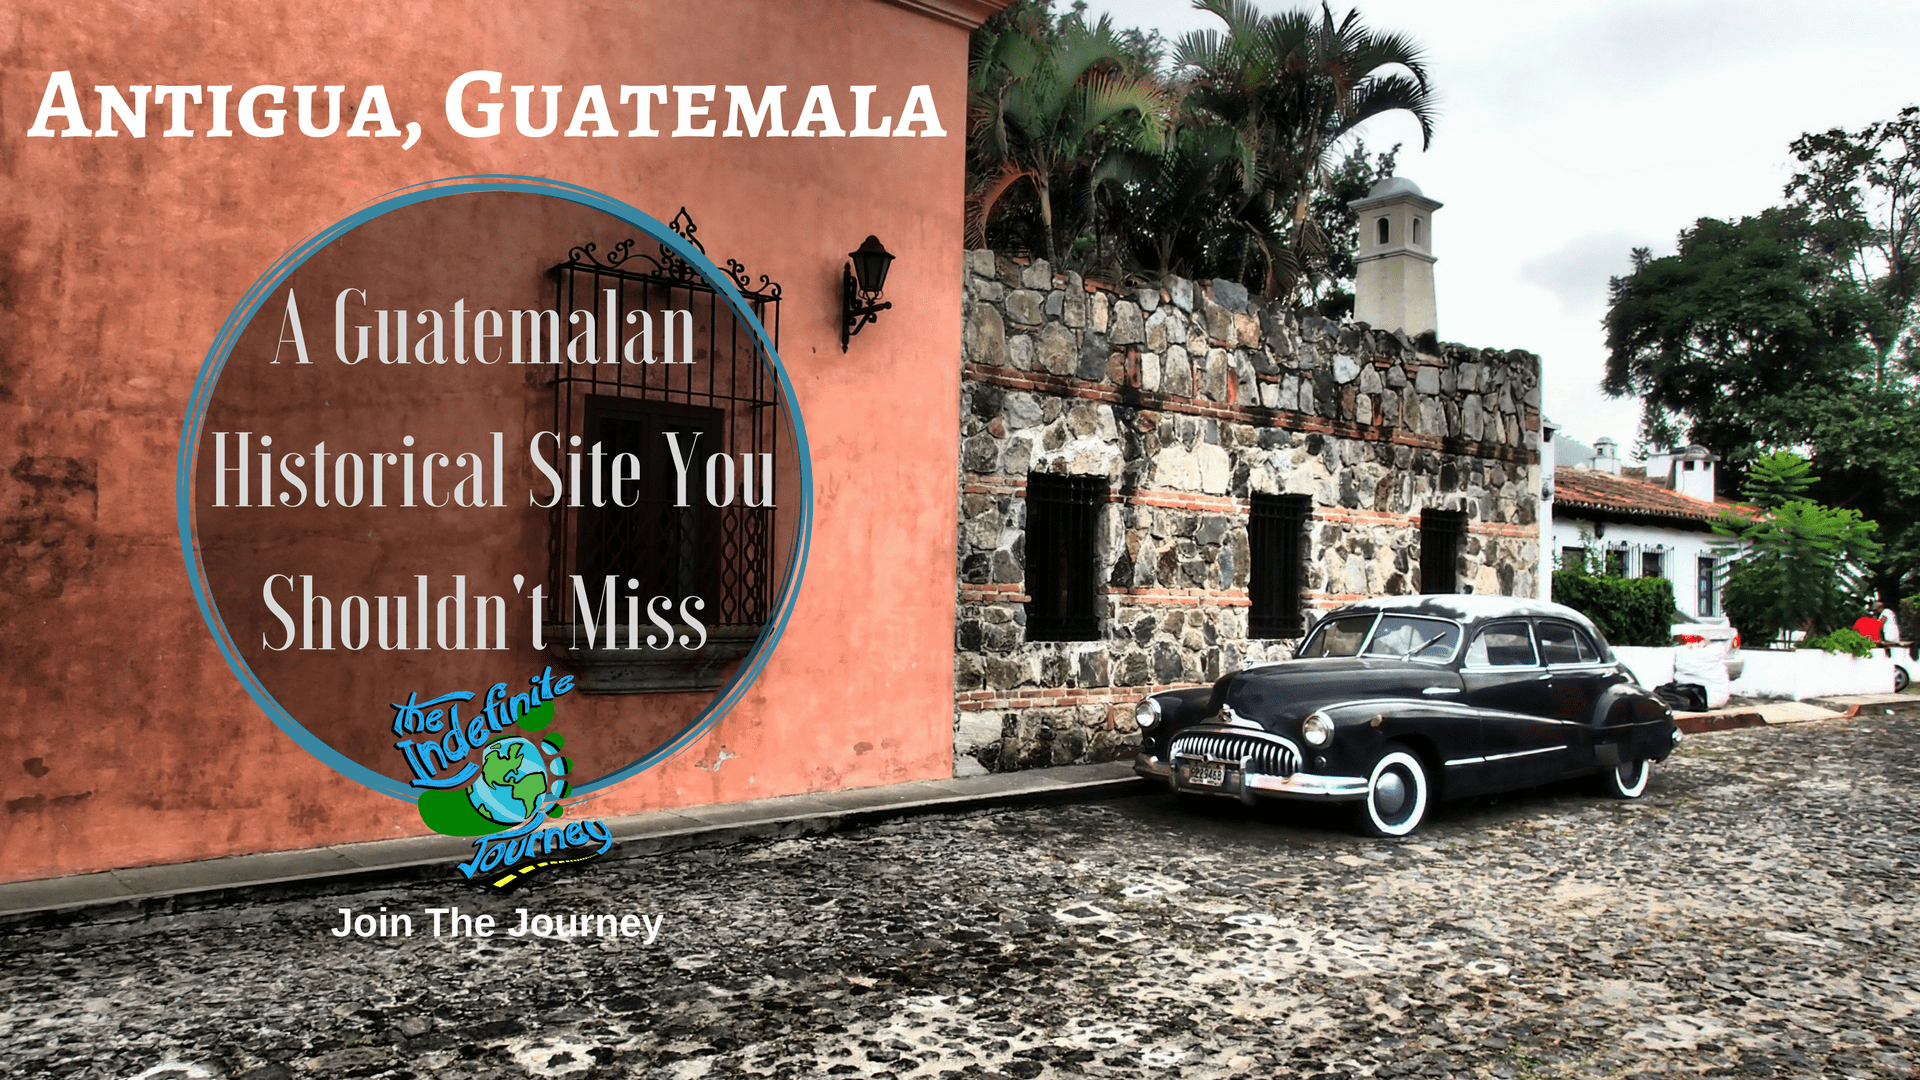 A Guatemalan Historical Site You Shouldn't Miss - Antigua, Guatemala